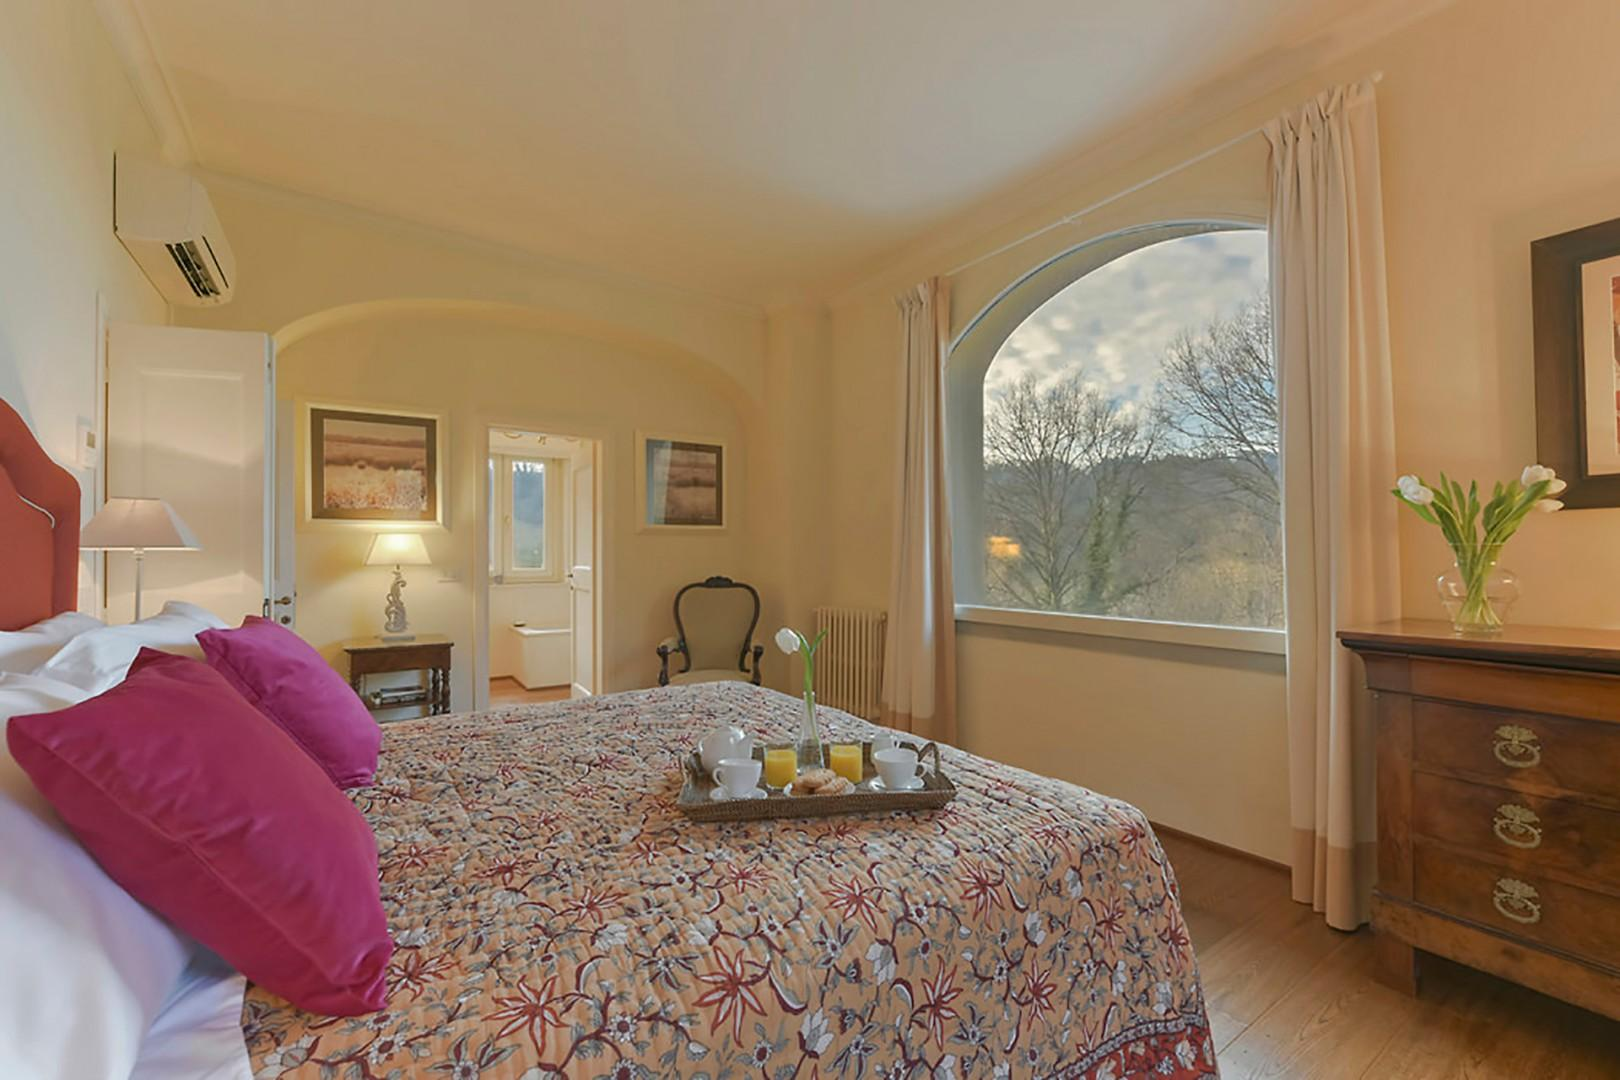 Bedroom 1 with large picture window overlooking the forest.